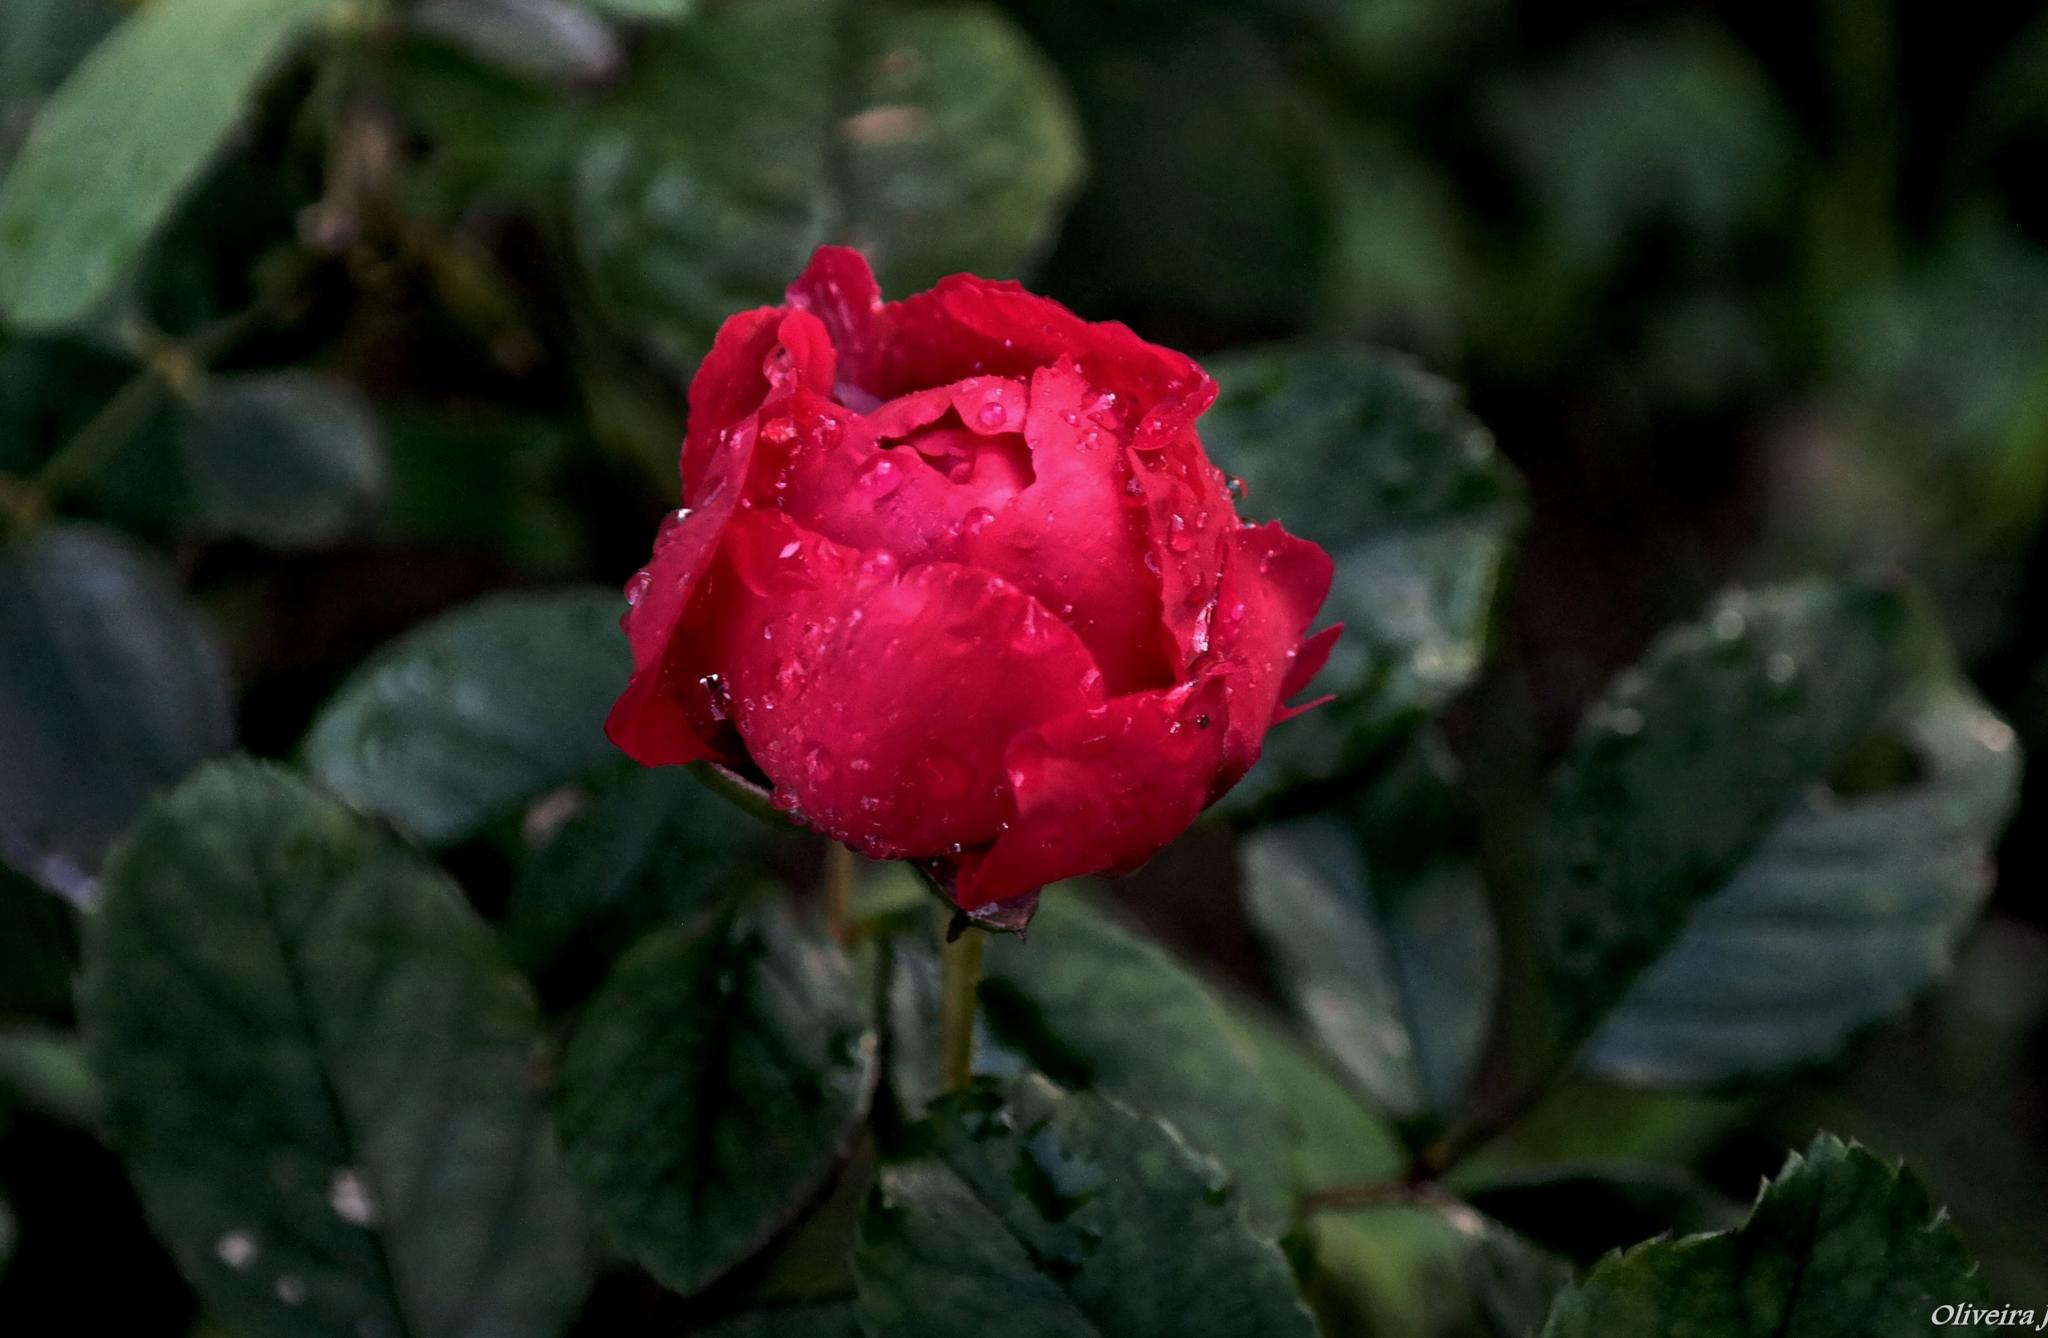 ROSE IN THE RAIN by joseoliveira1694